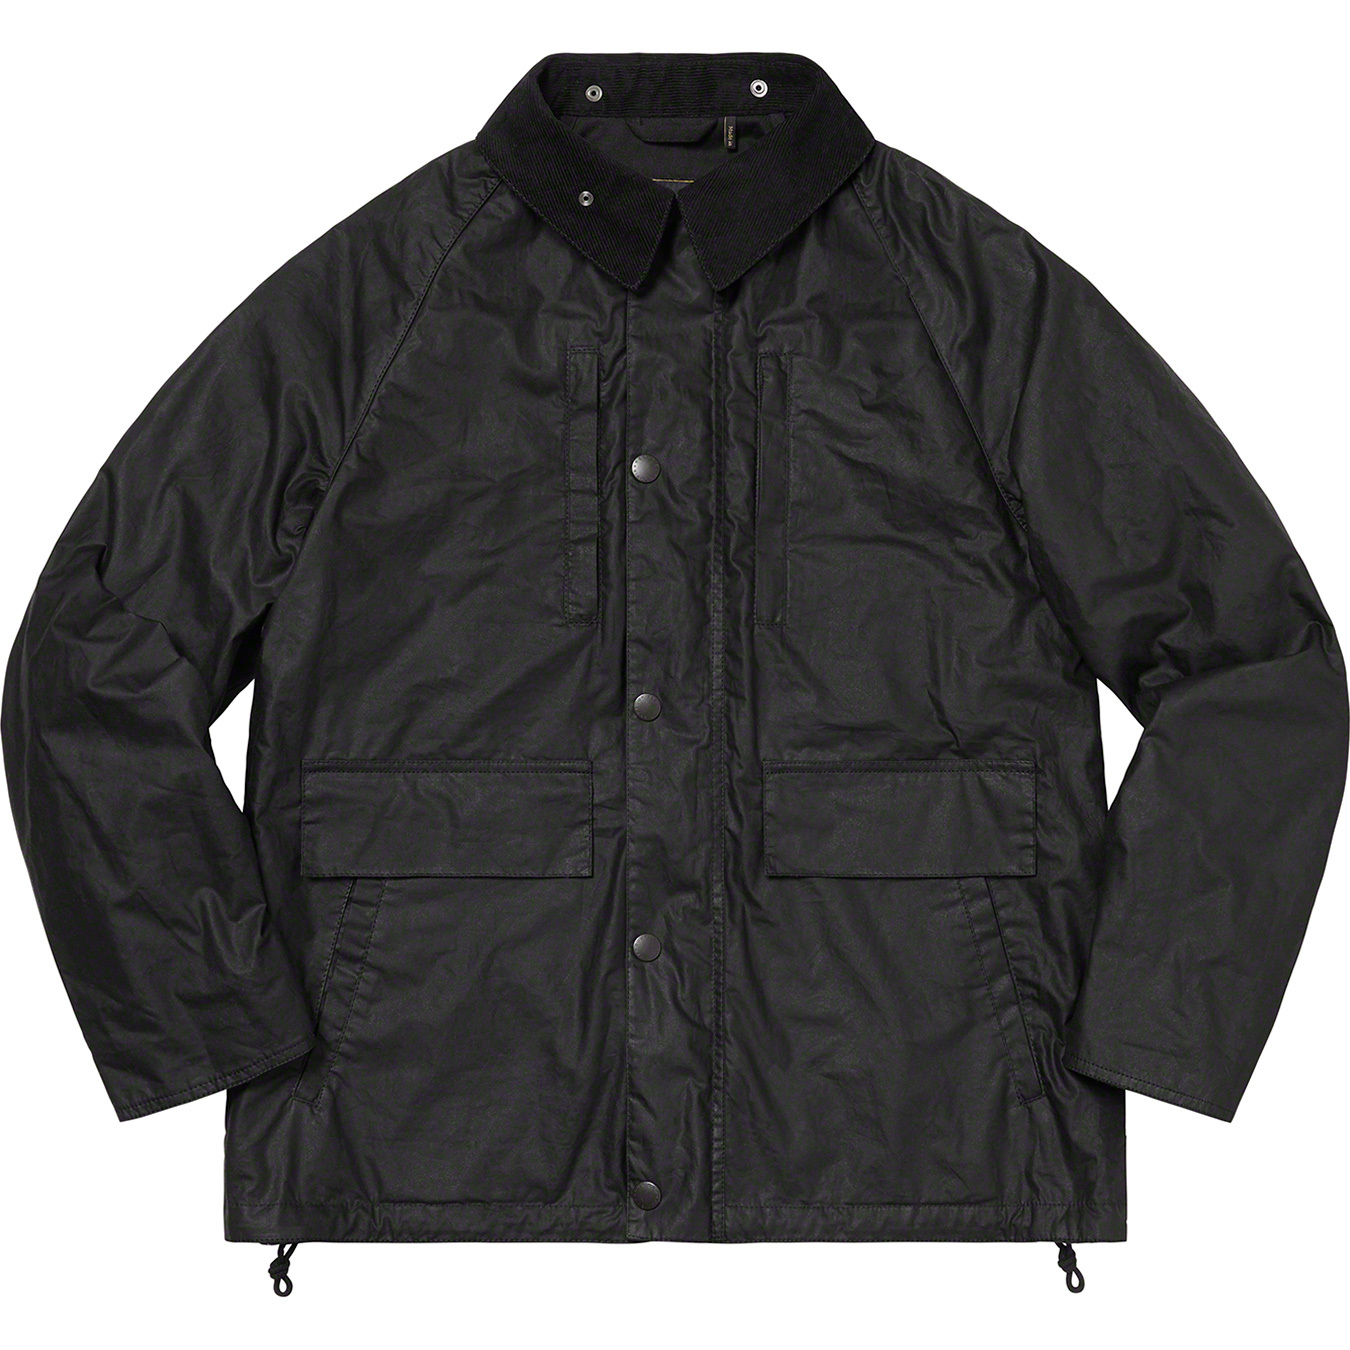 supreme-barbour-20ss-collaboration-release-20200509-week11